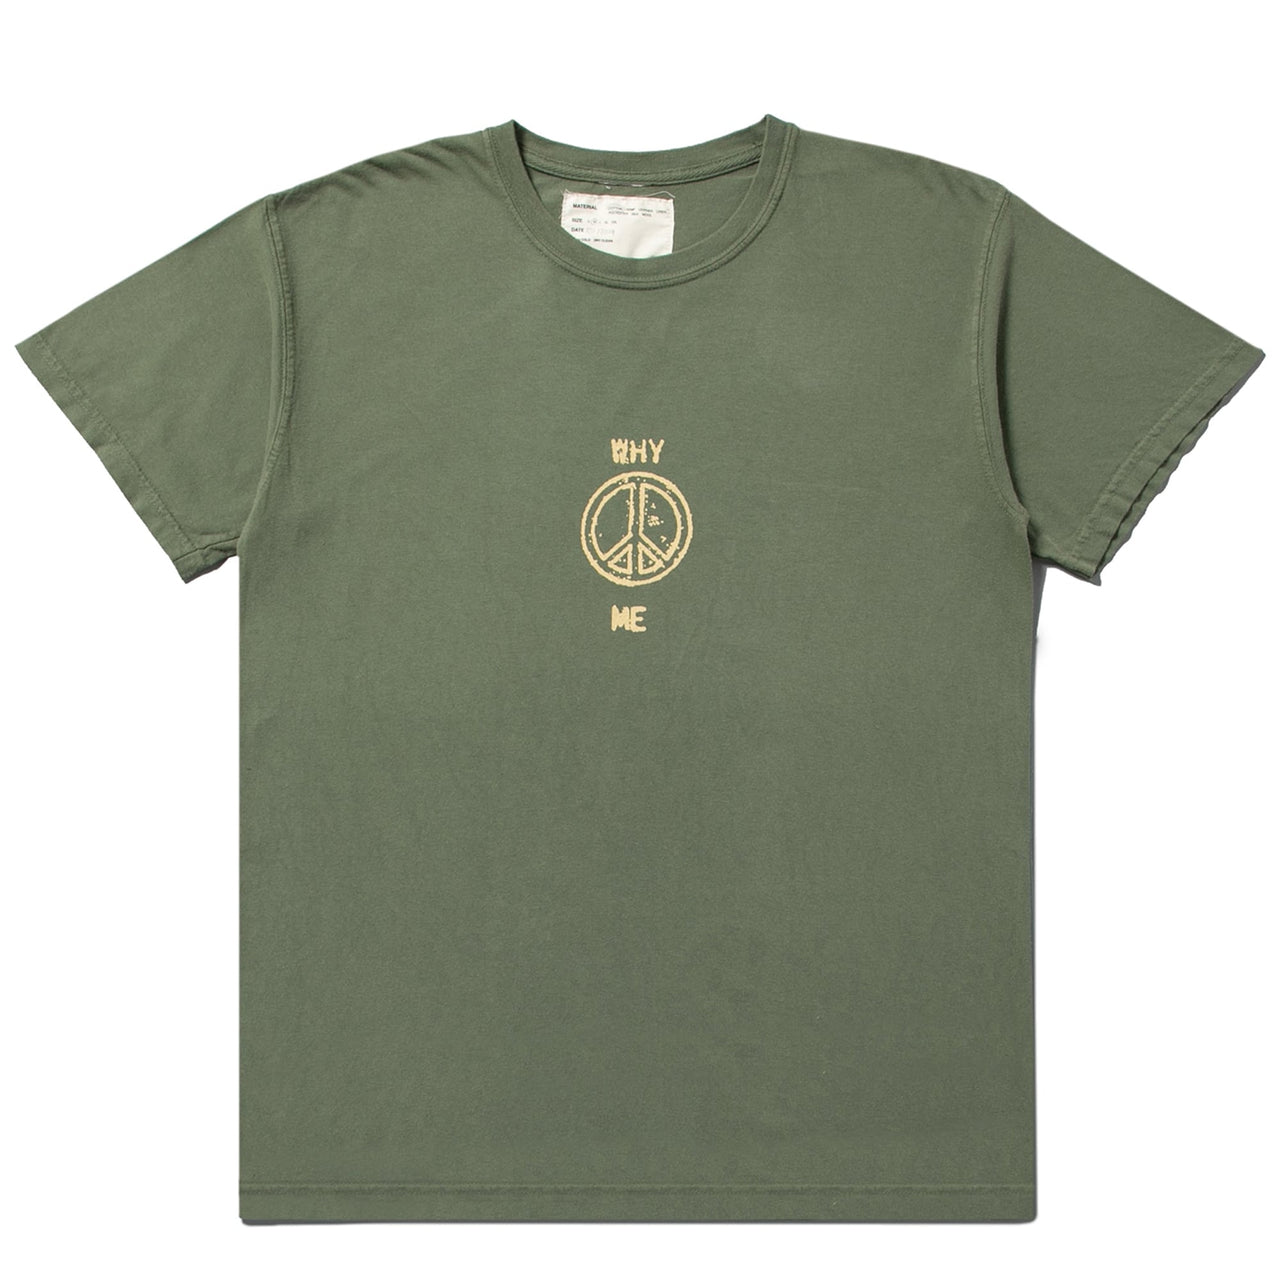 FUCK IT T-SHIRT - Army